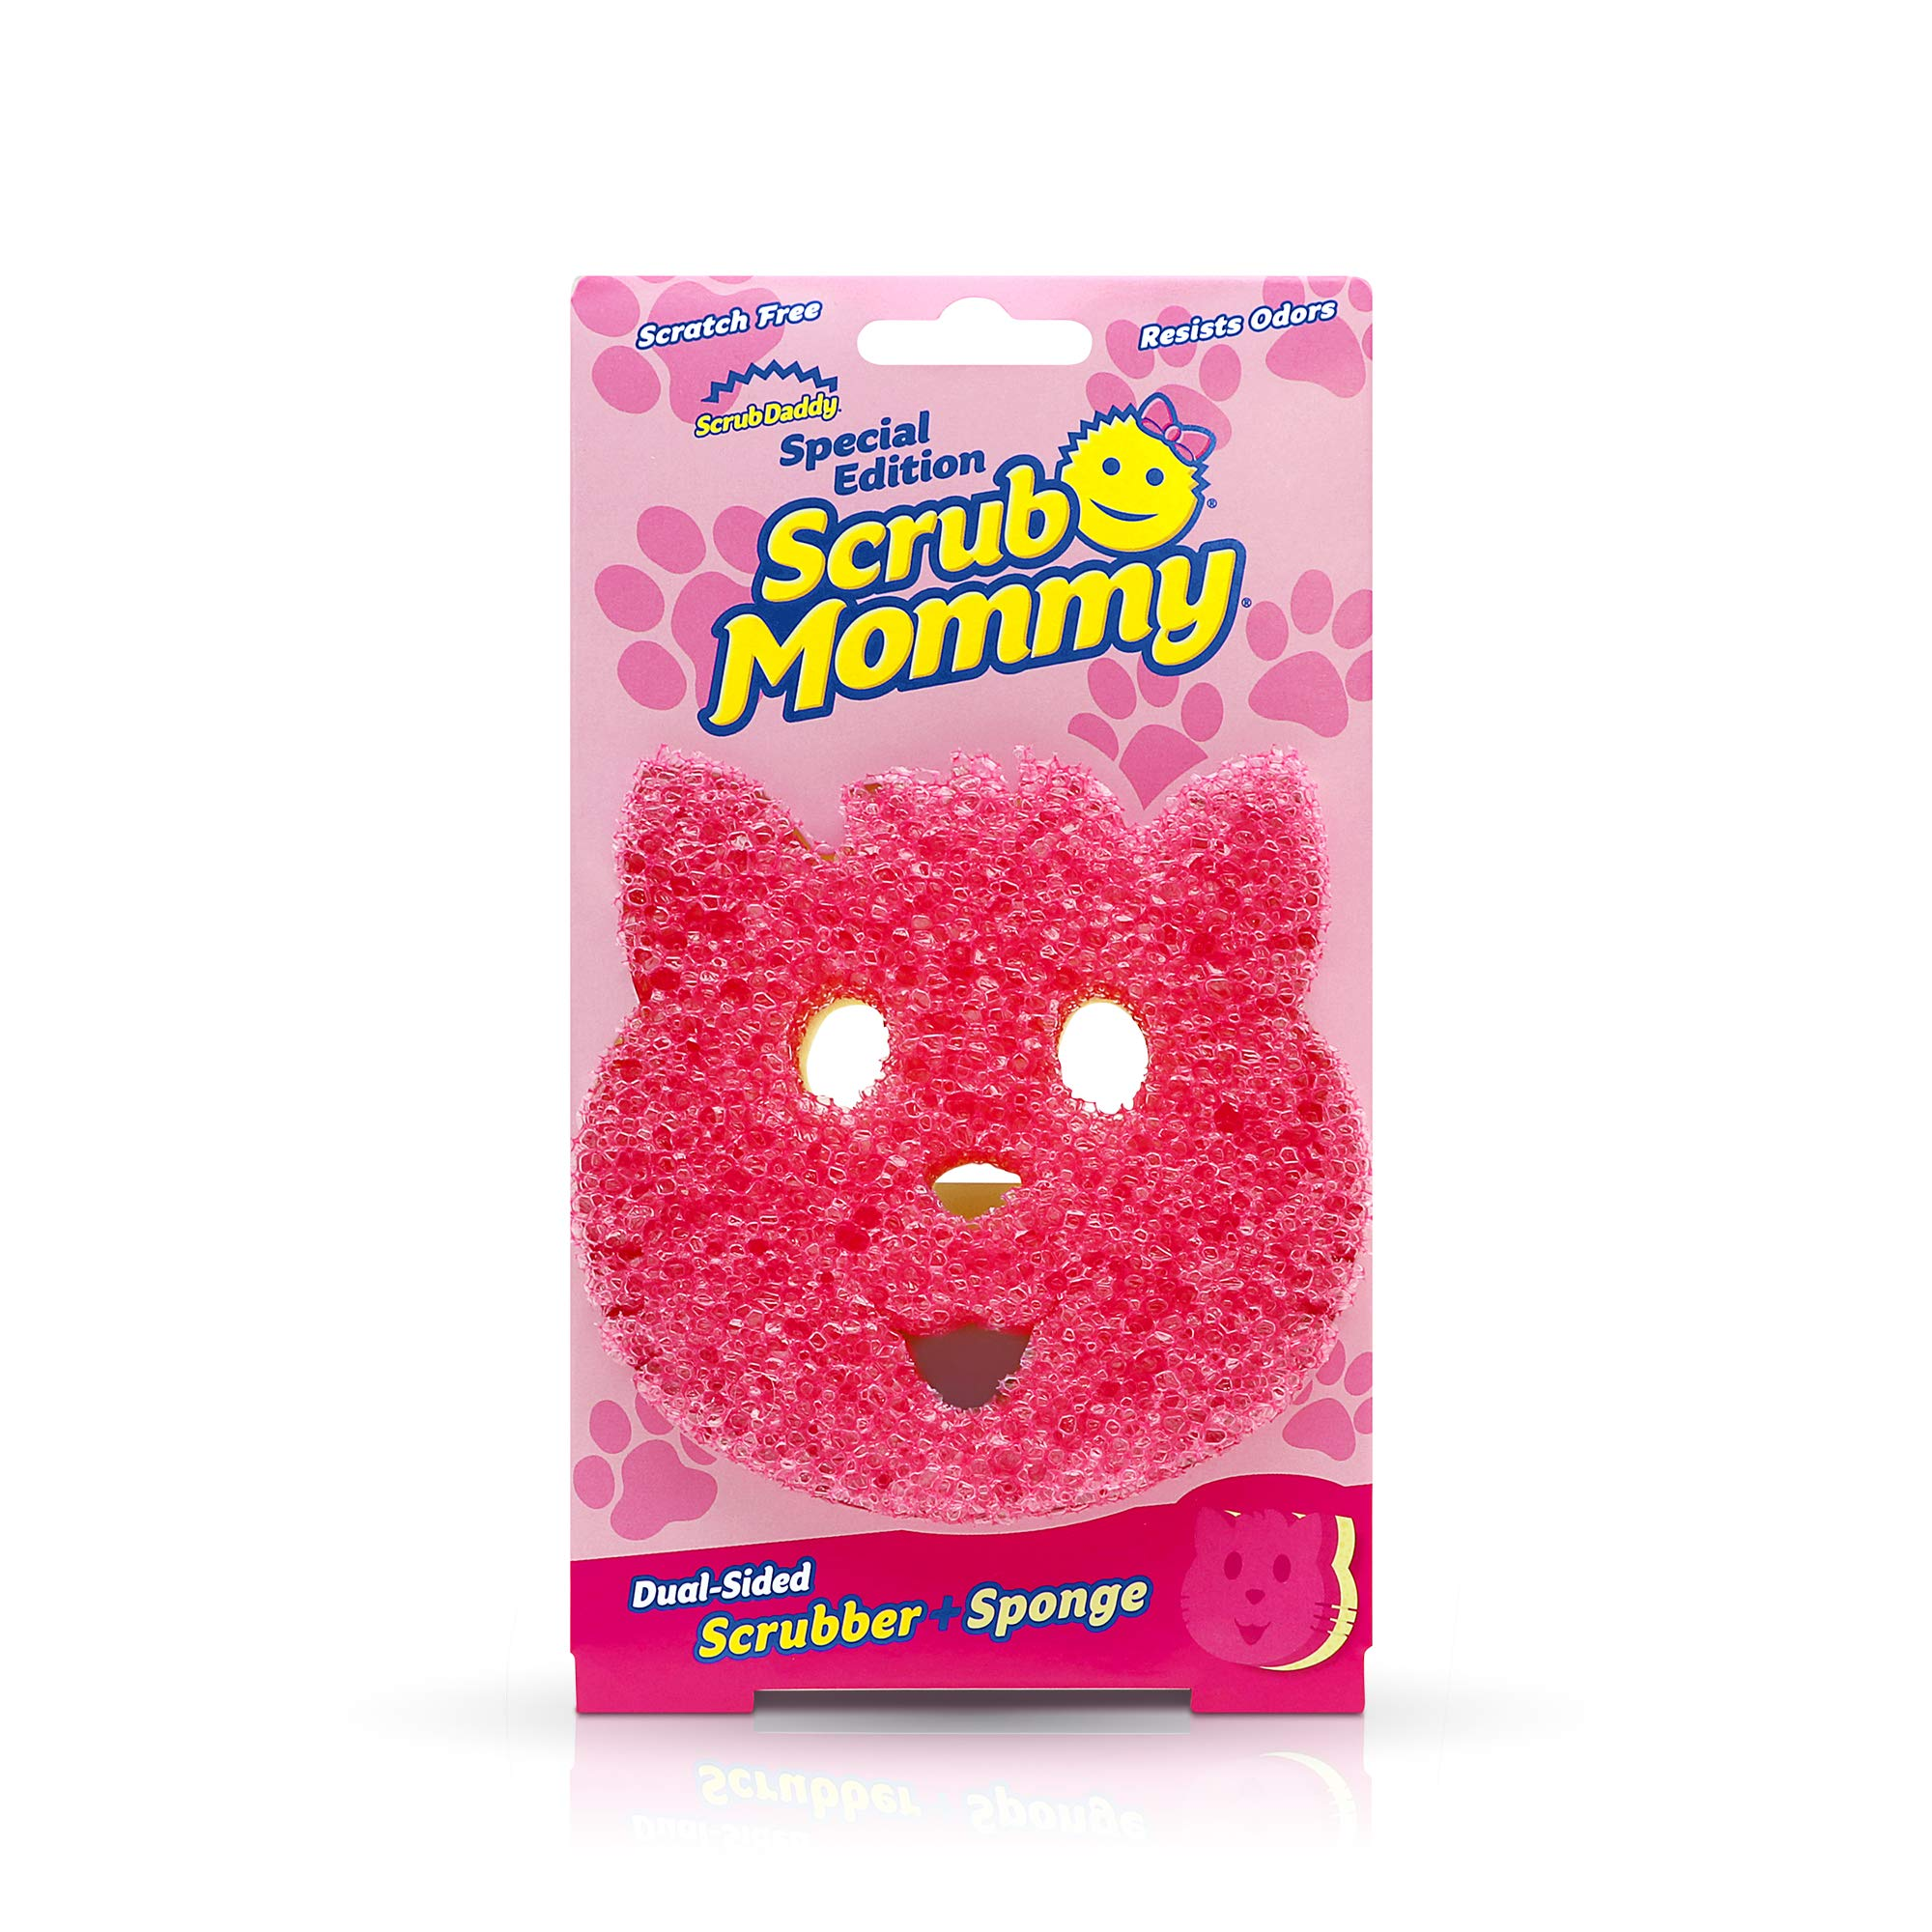 Scrub Daddy Dual-Sided Sponge and Scrubber - Scrub Mommy Special Edition Cat Shape - Scratch Free, Odor Resistant, Multi-Surface, Soft in Warm Water, Firm in Cold, FlexTexture, Dishwasher Safe - 1 ct